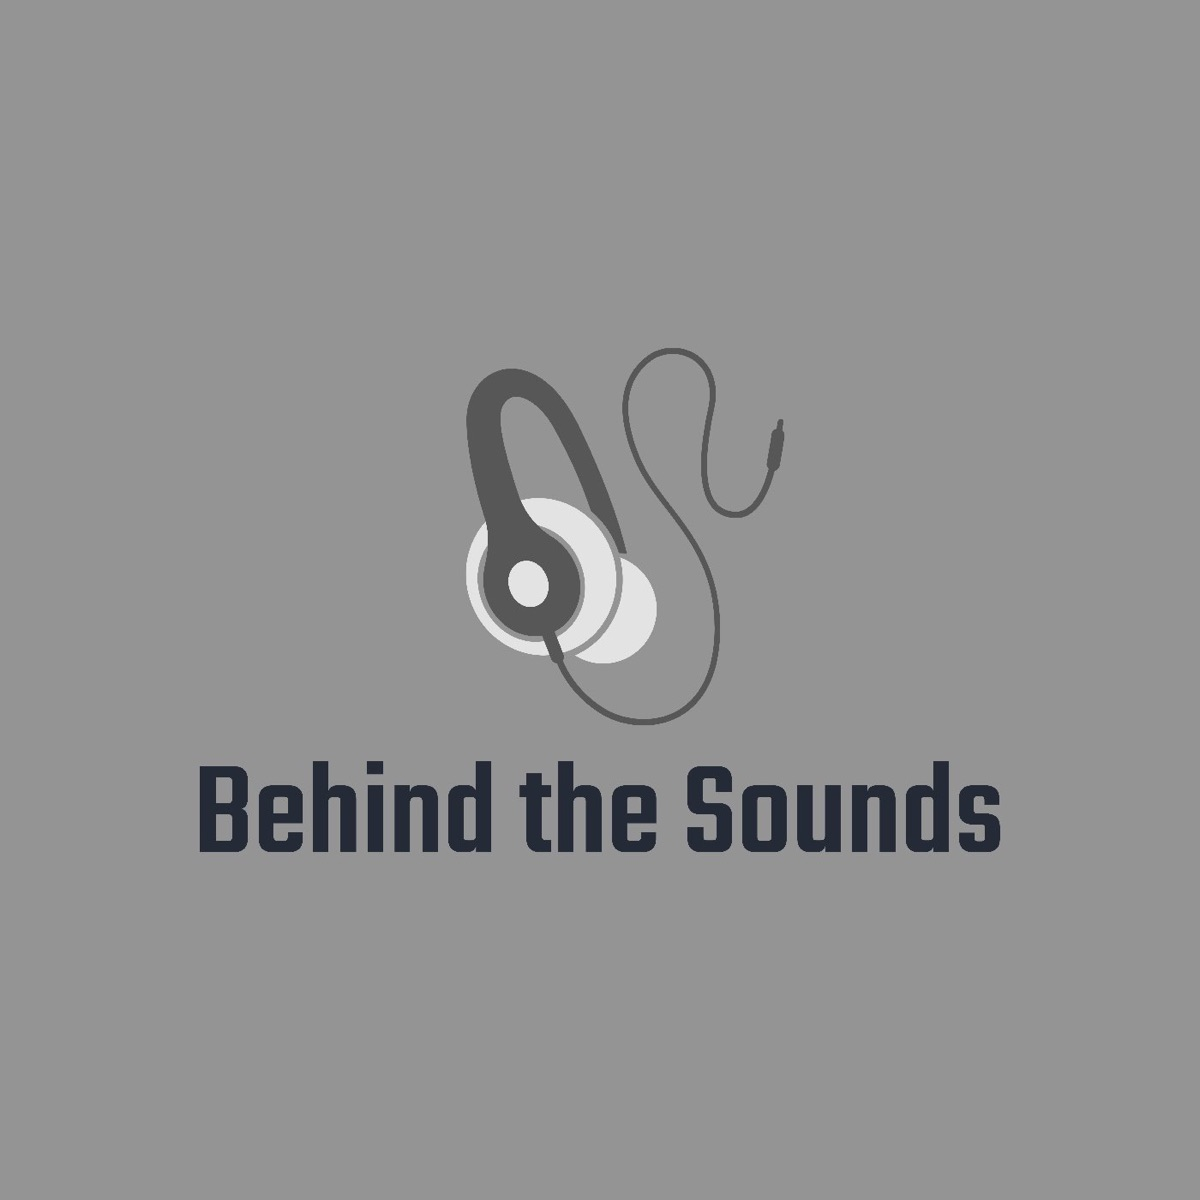 Behind The Sounds